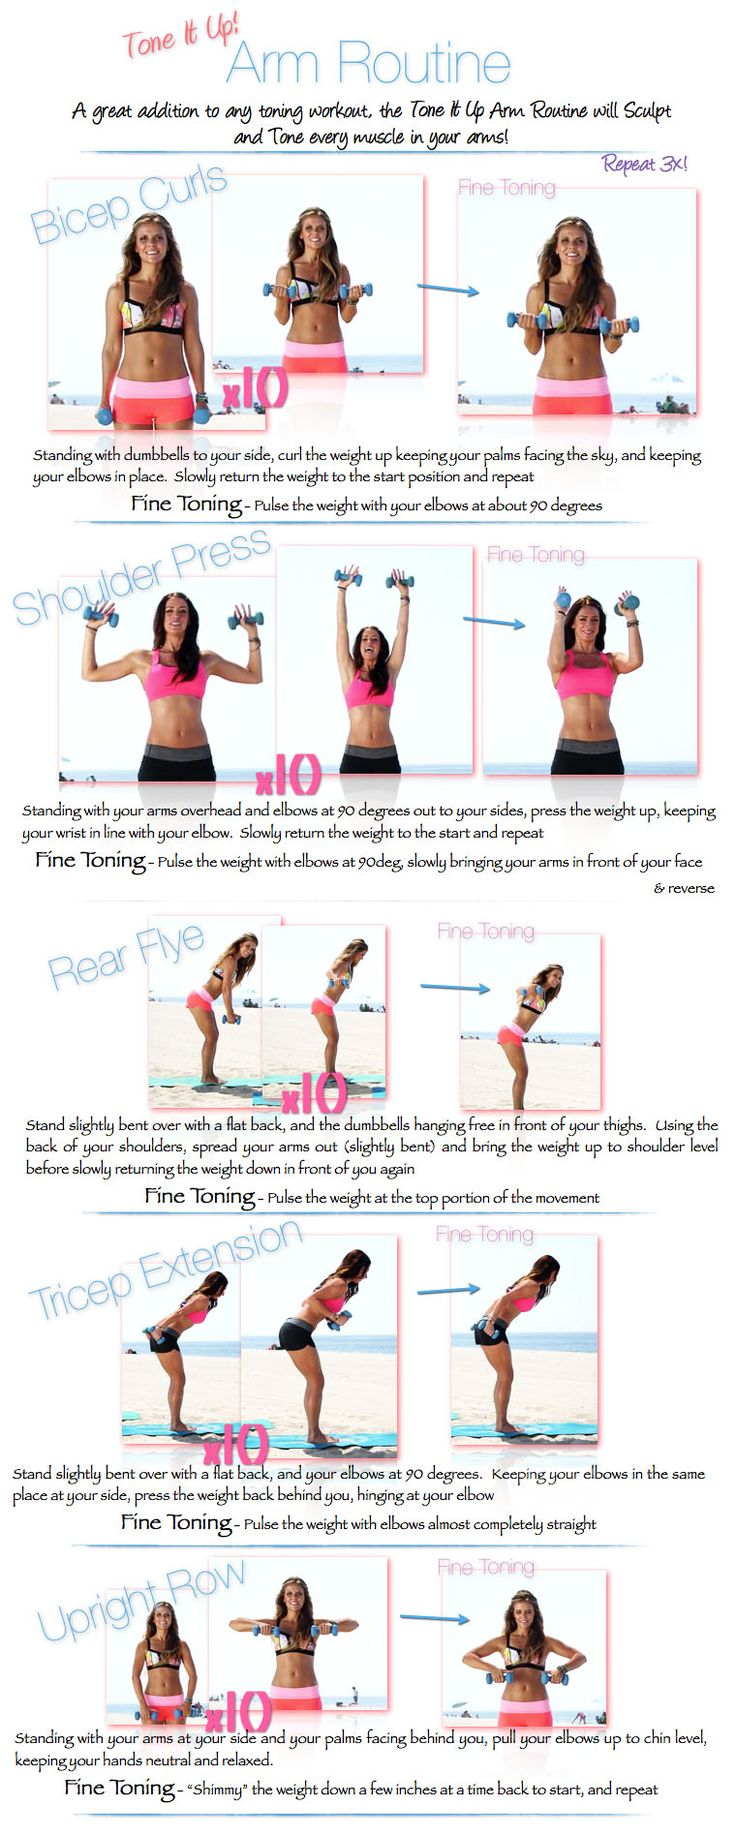 A great addition to any toneitup.com workout